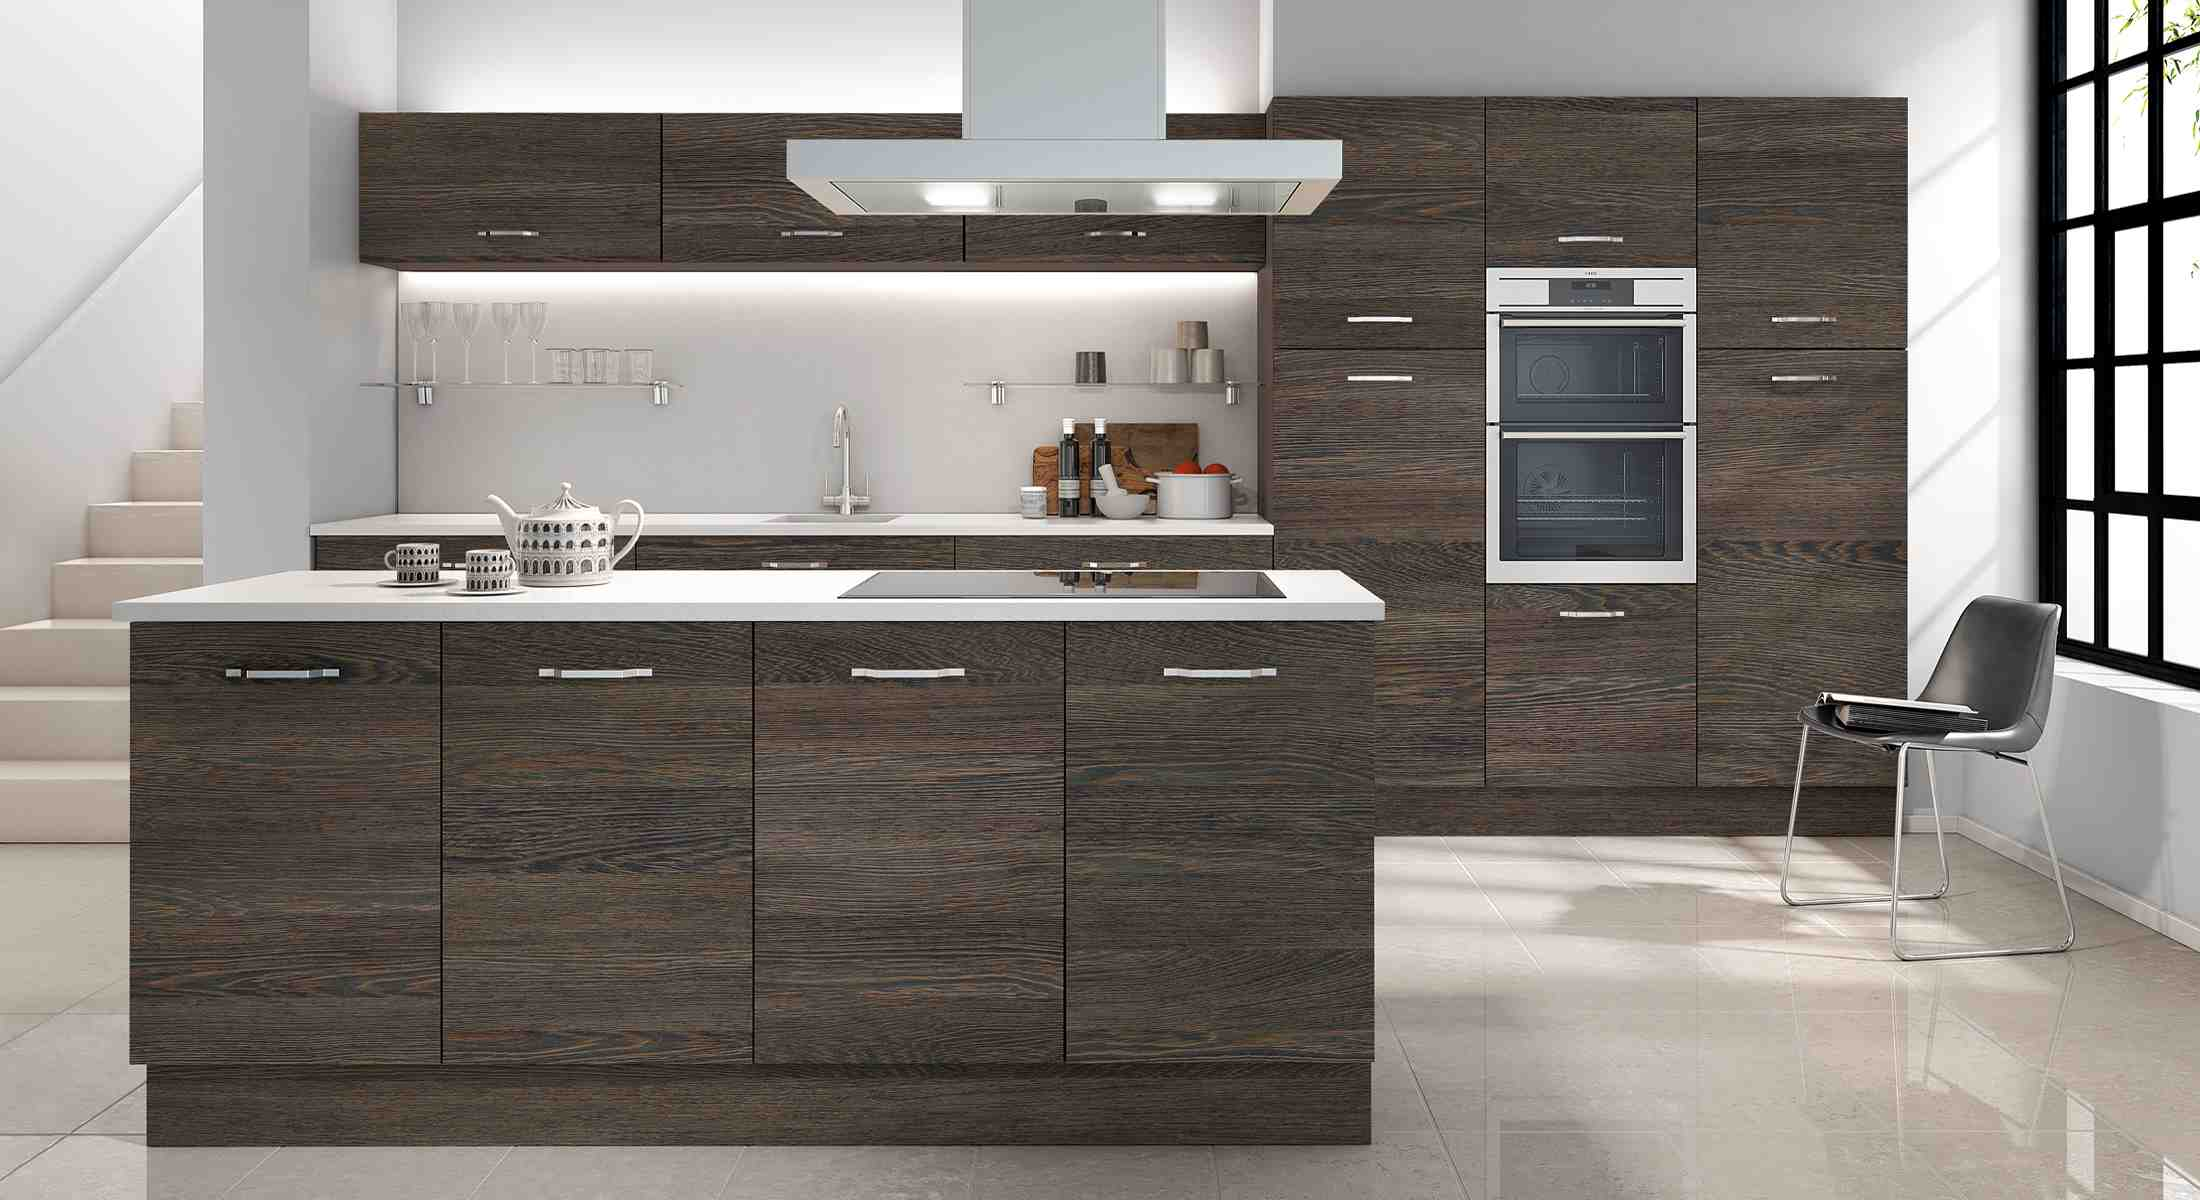 give your kitchen the natural feel, with the vassa structures, cut and edged door, now including some of the latest, most realistic woodgrain finishes available